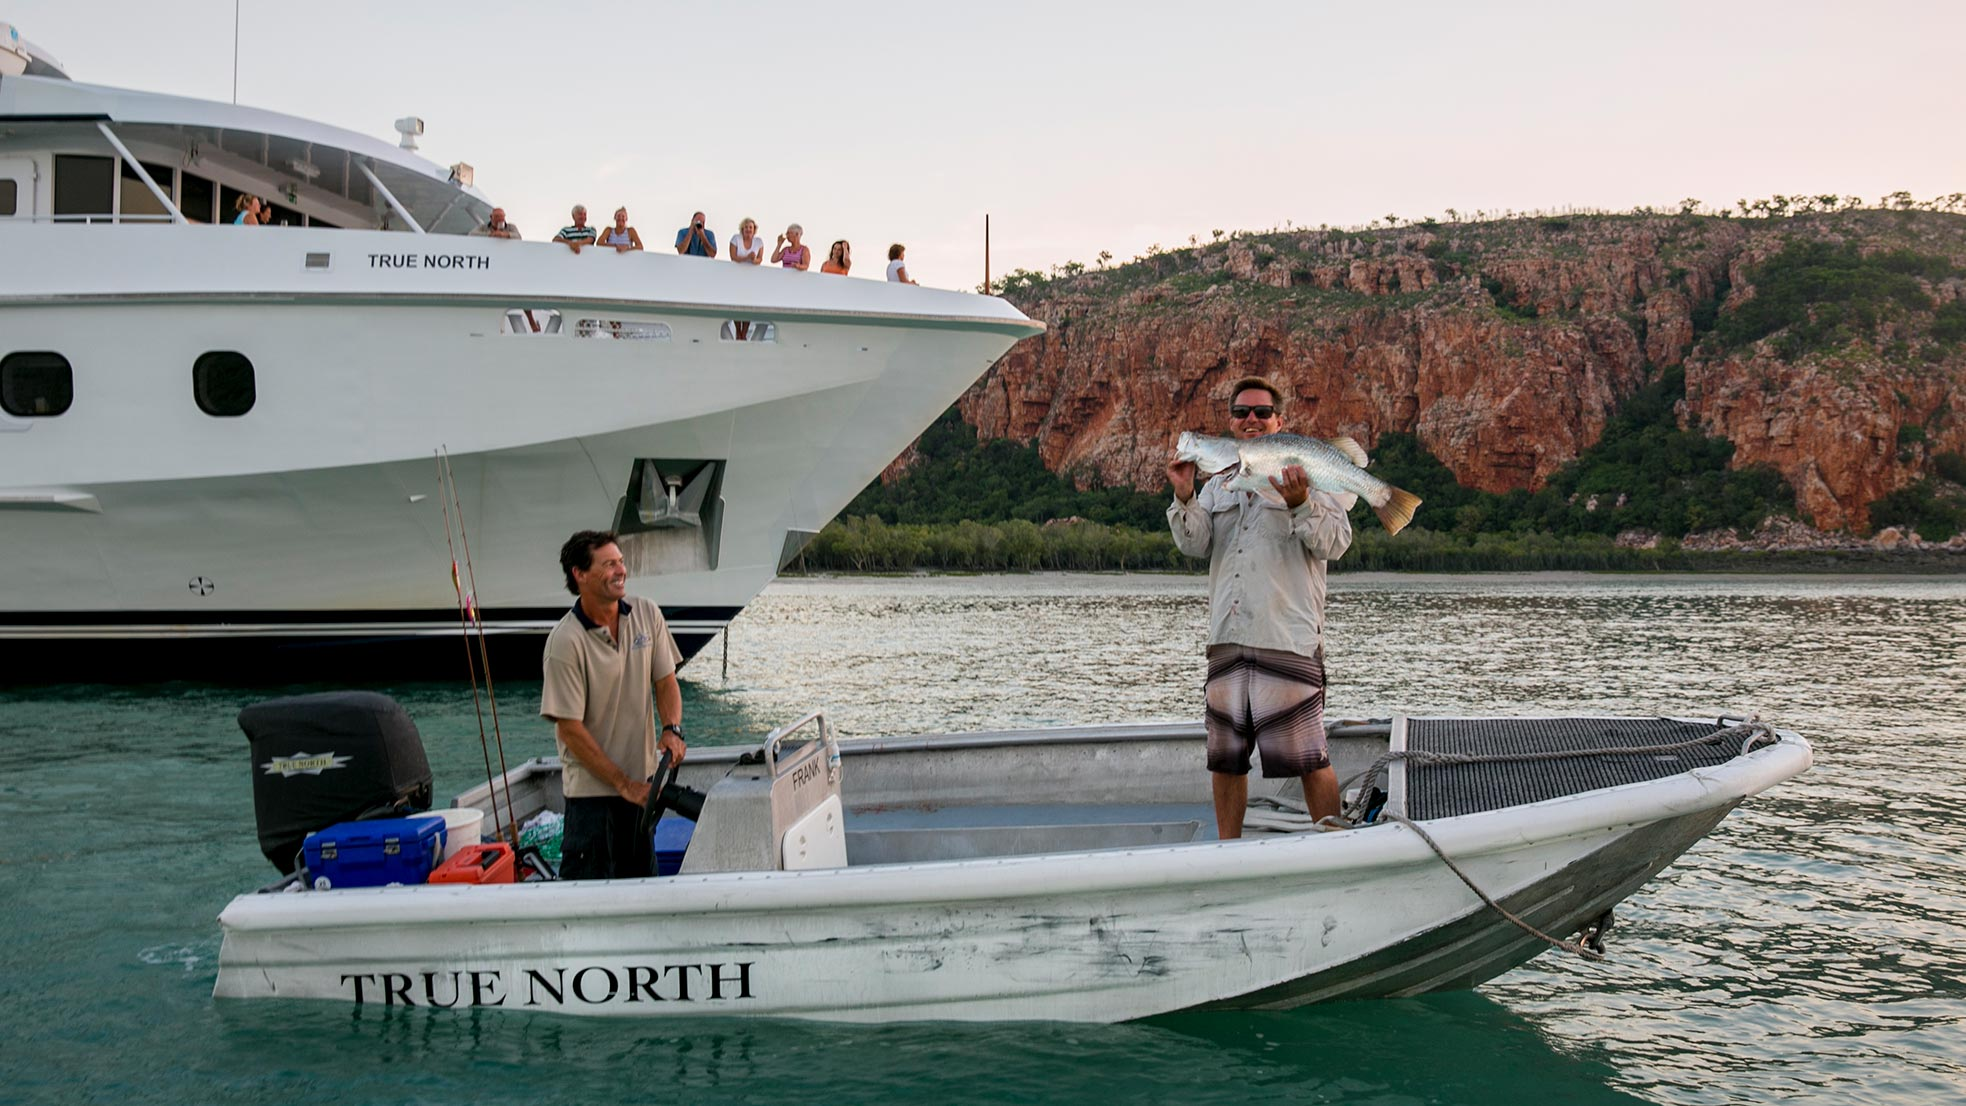 true north 13 day kimberley ultimate cruise - HD 1966×1106